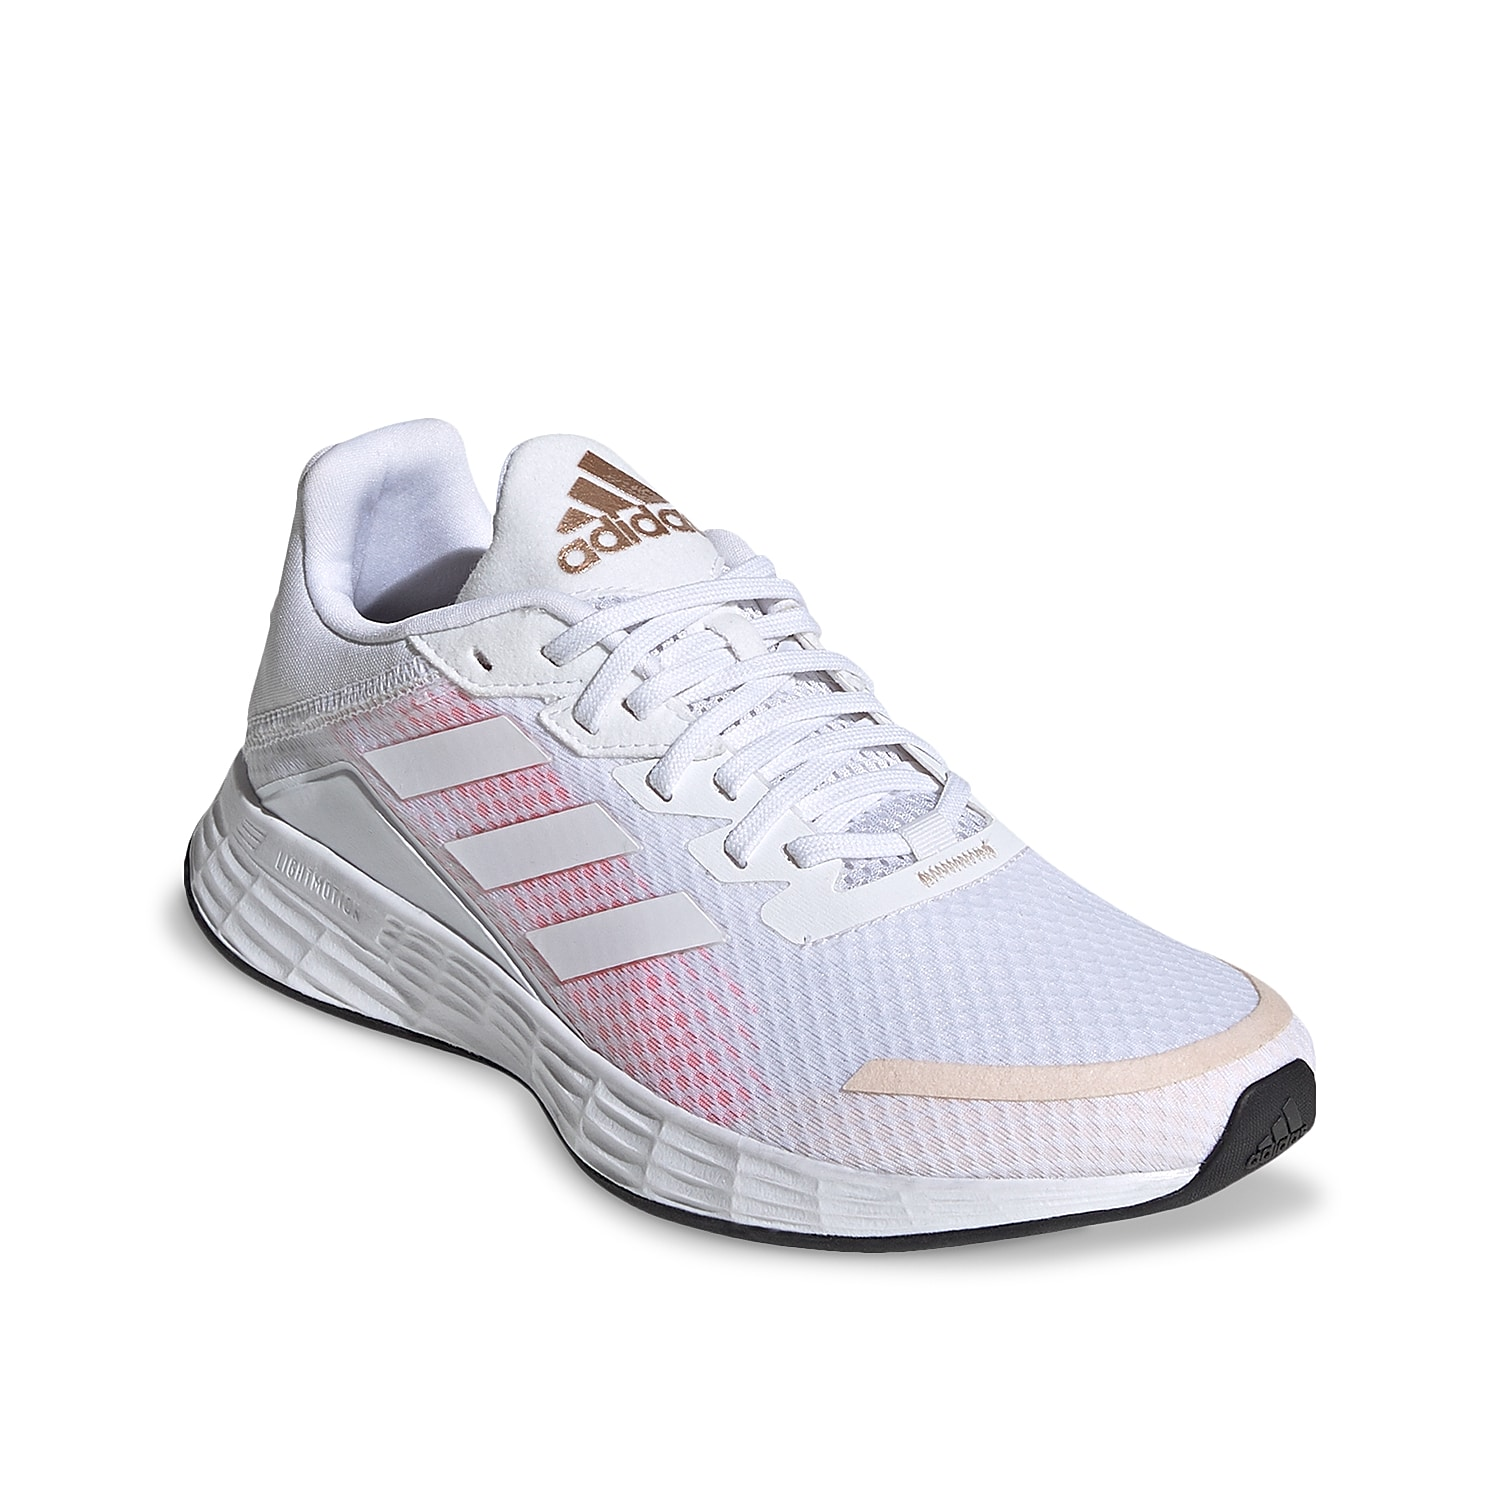 Add versatility to your workout with the women\\\'s Duramo SL running shoe from adidas. This pair features a Lightmotion midsole and OrthoLite® sockliner to provide comfort for every stride, jump, or turn.